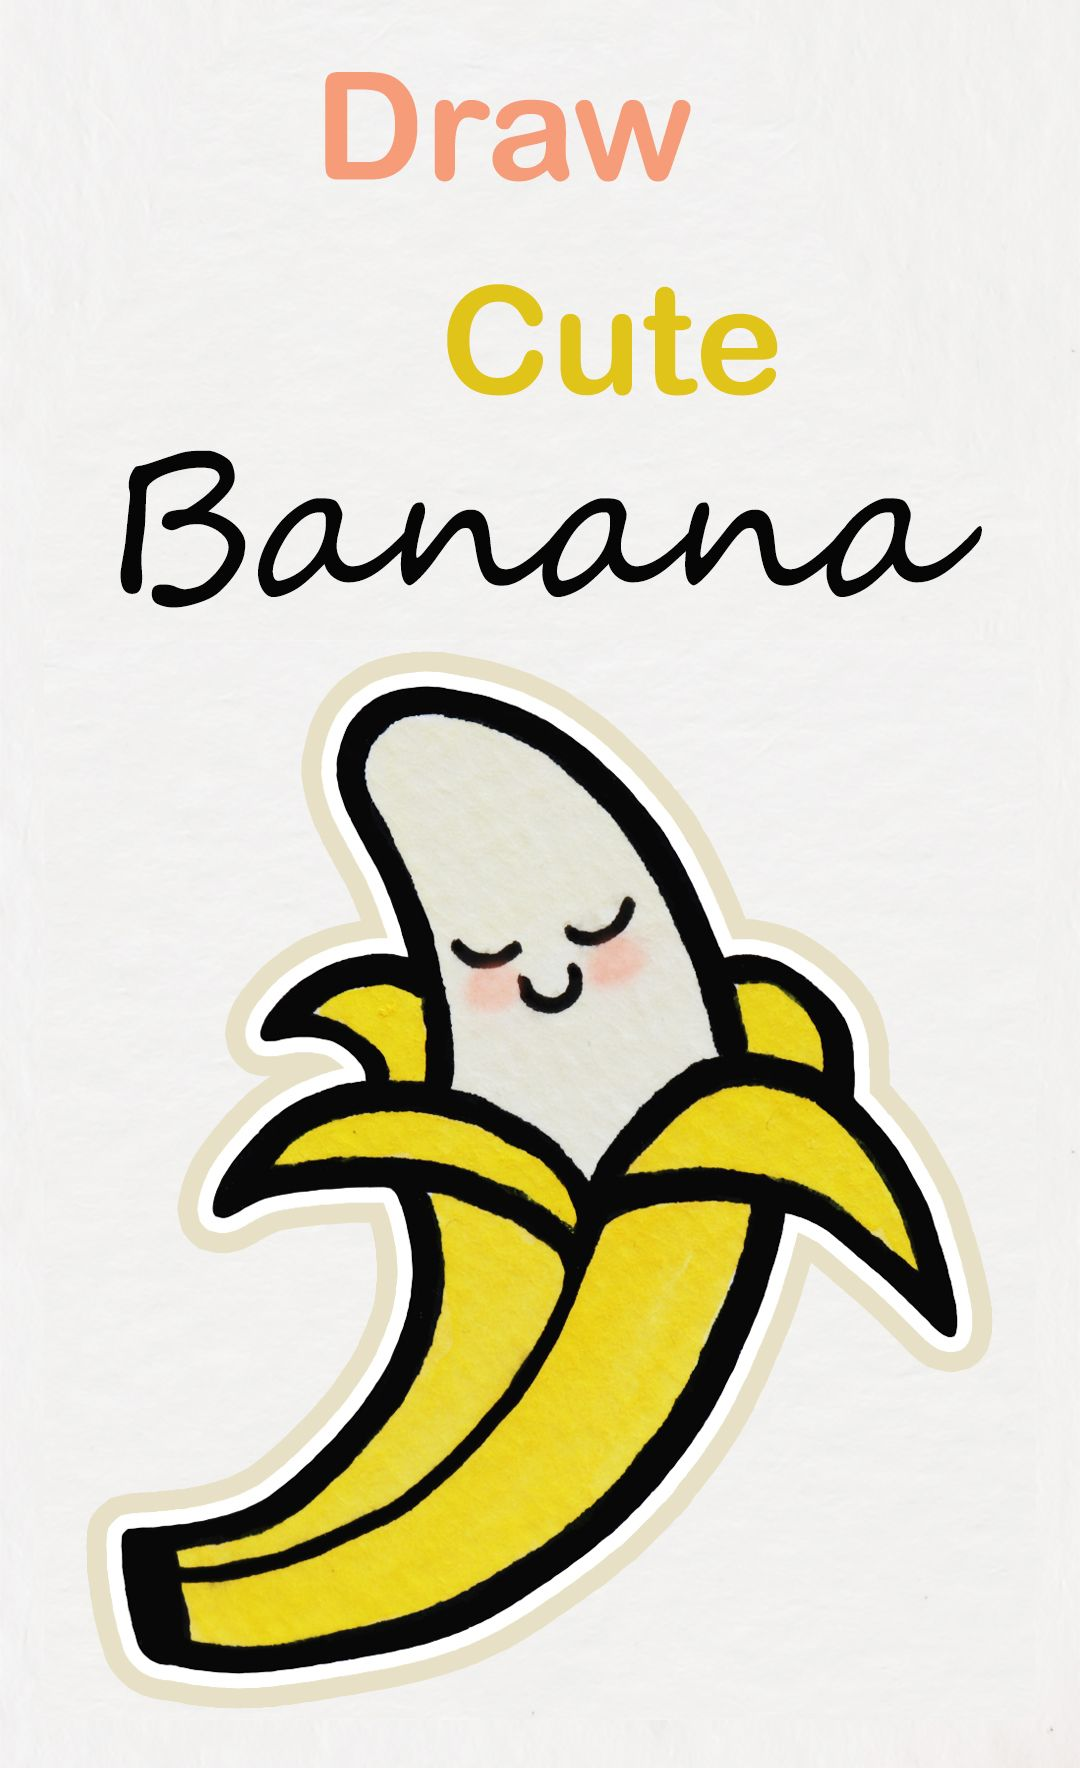 graphic freeuse library Bananas drawing cute. Learn how to draw